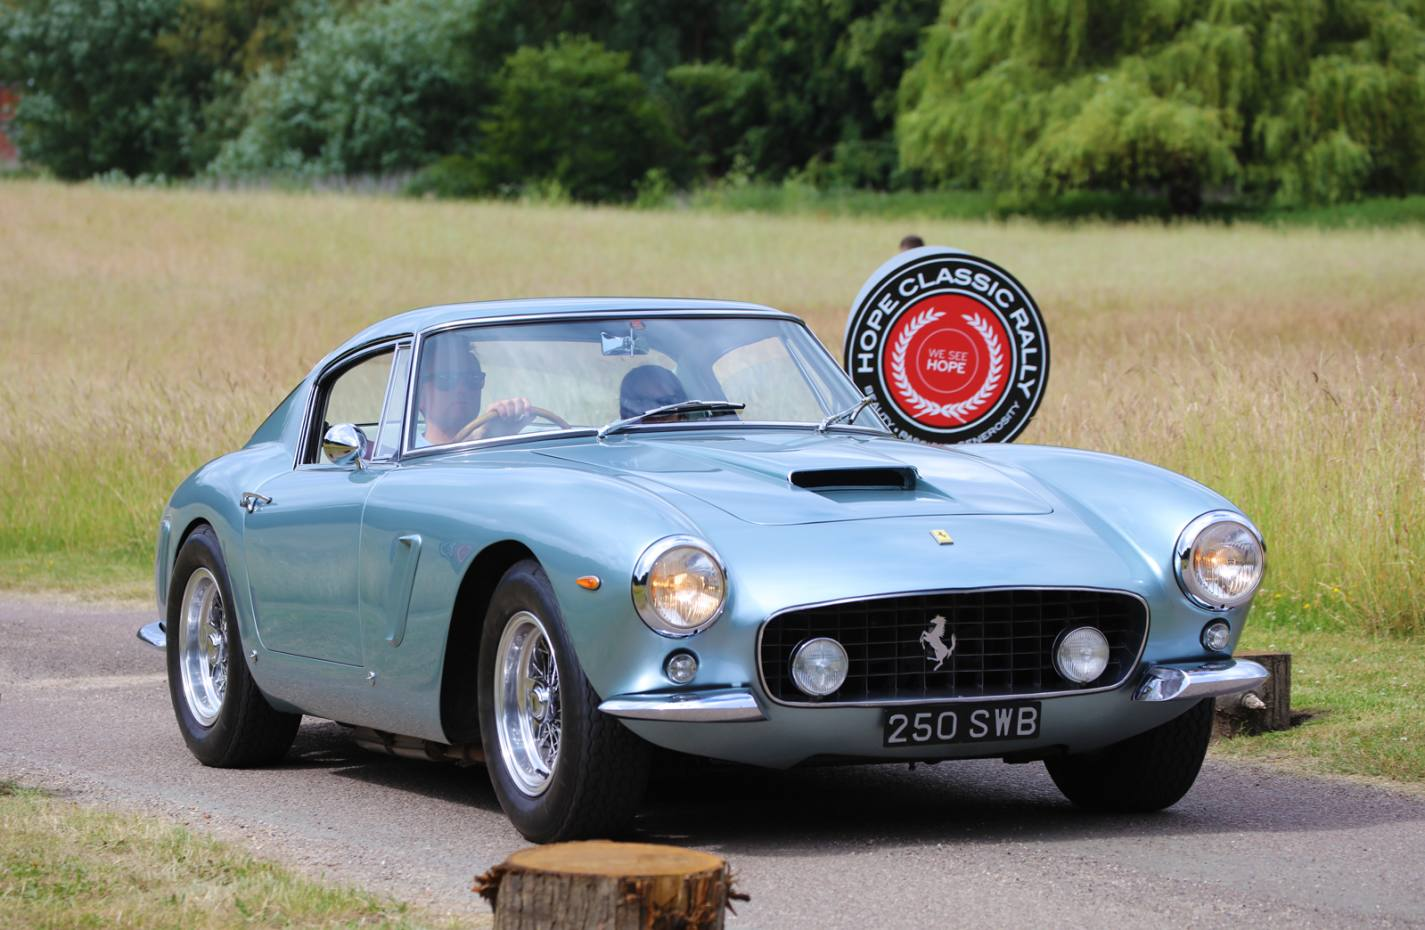 A Ferrari 250 SWB is one of the valuable classics that rally entrants may find themselves driving